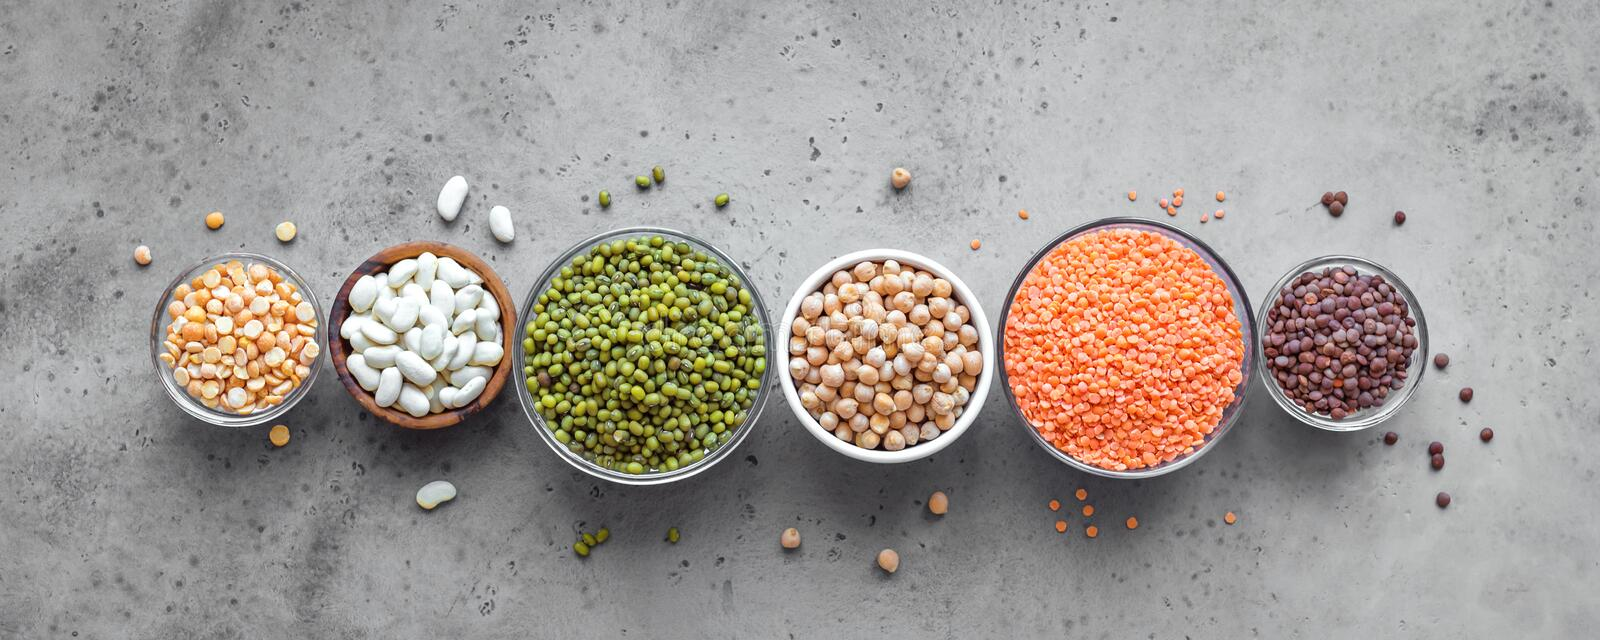 Legumes Assortment. Assortment of colorful legumes in bowls, lentils, kidney beans, chickpeas, mung, peas on concrete background, top view, banner. Healthy food stock photography